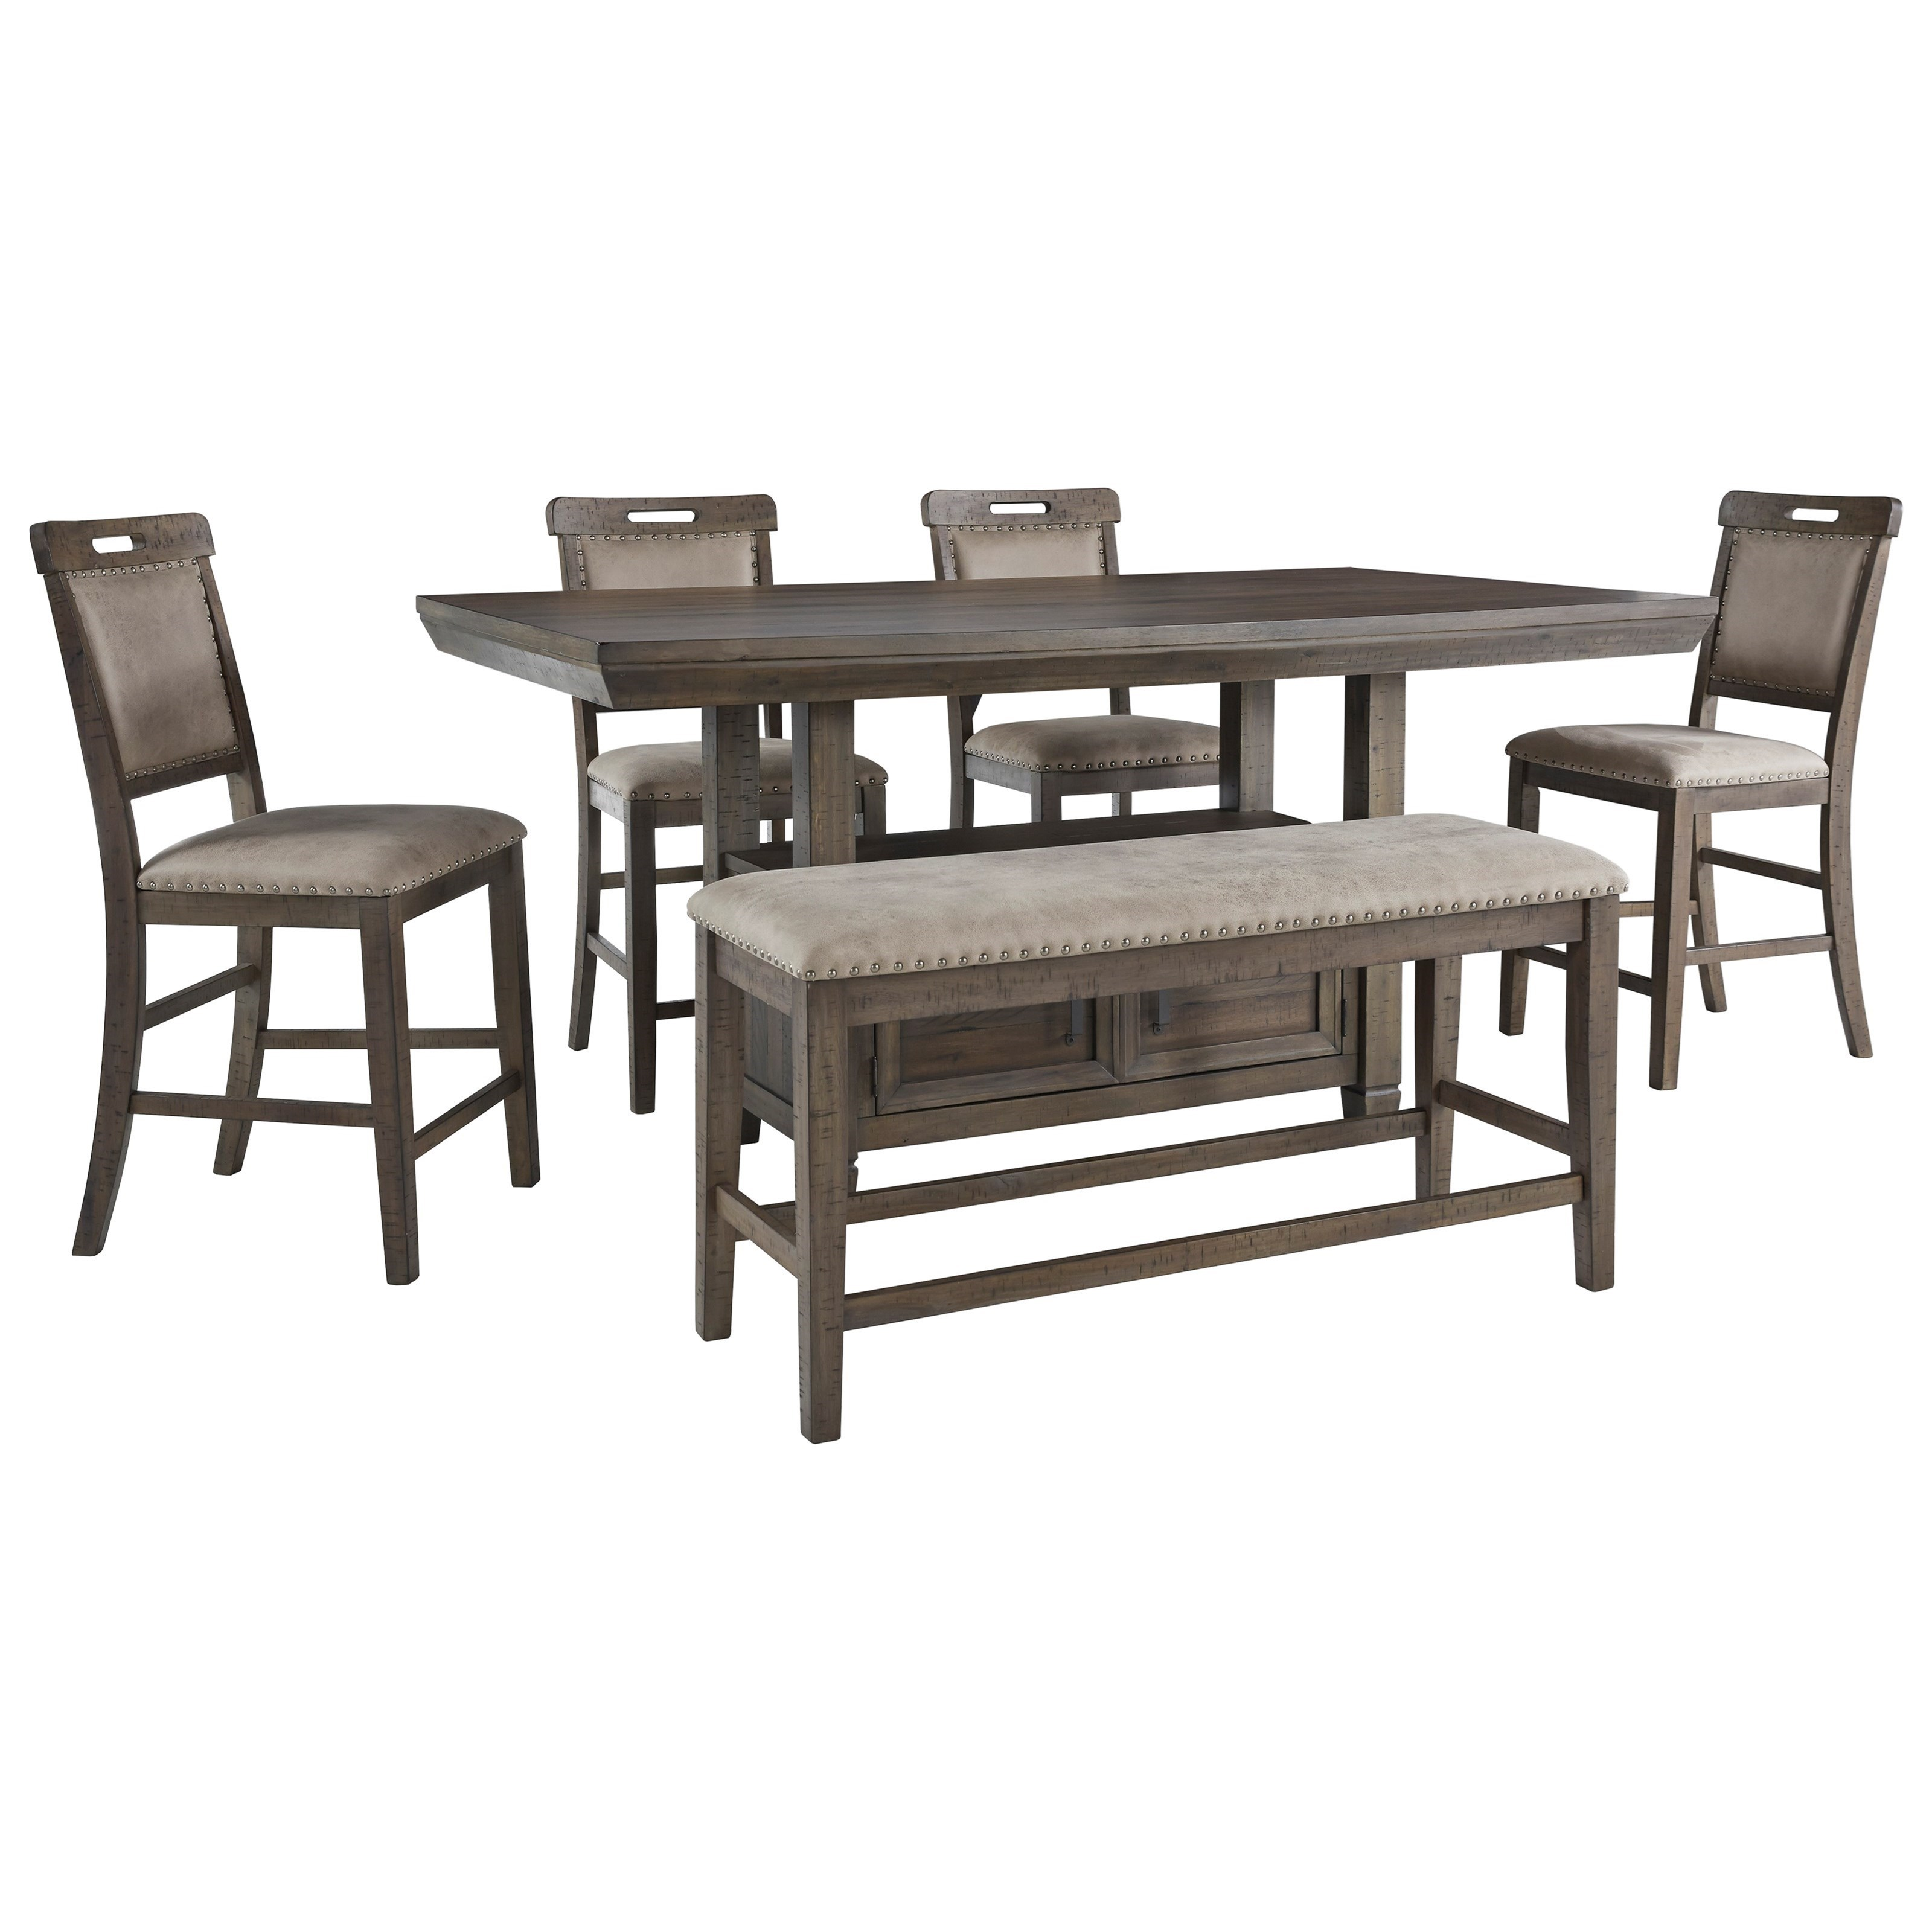 Johurst 6-Piece Counter Height Dining Set with Bench by Benchcraft at Walker's Furniture